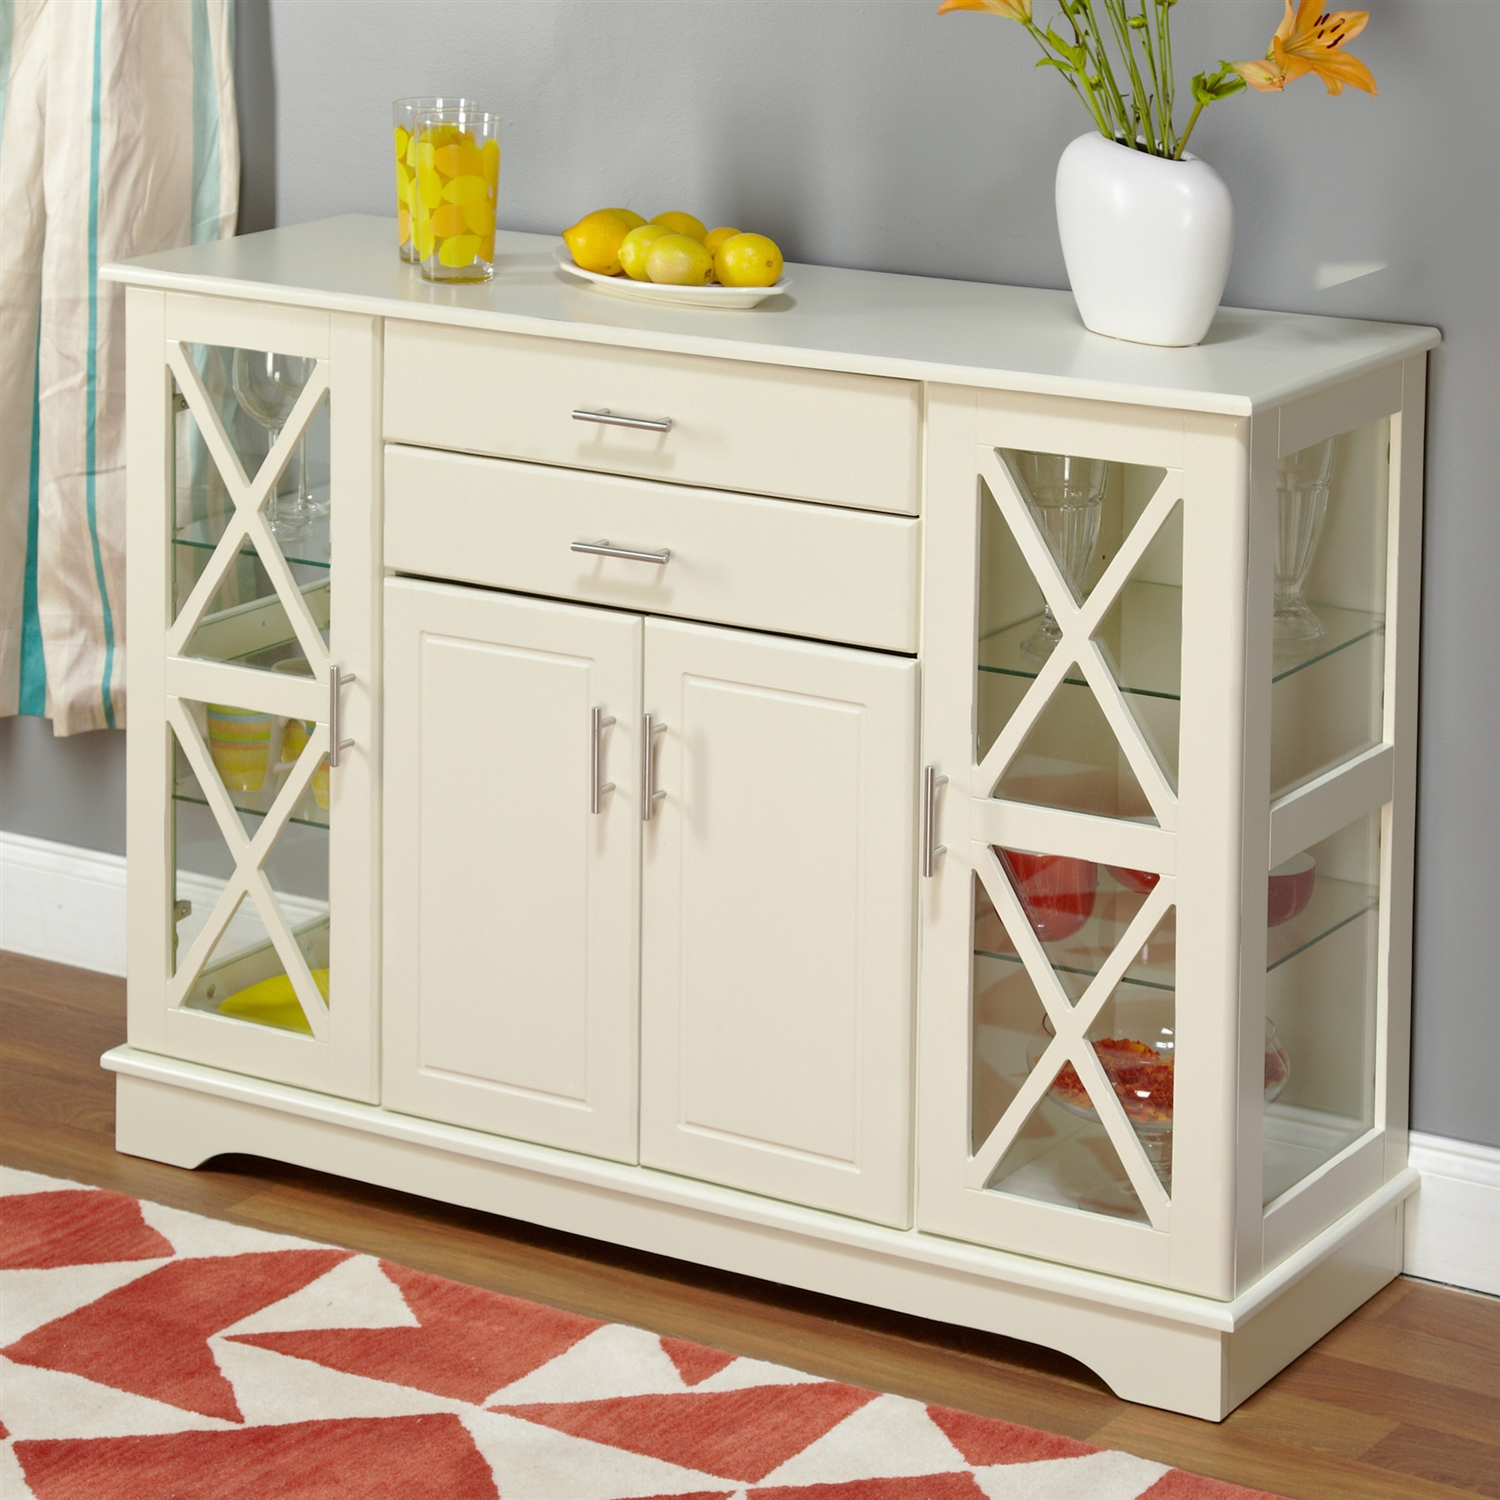 Genial White Wood Buffet Sideboard Cabinet With Glass Display Doors